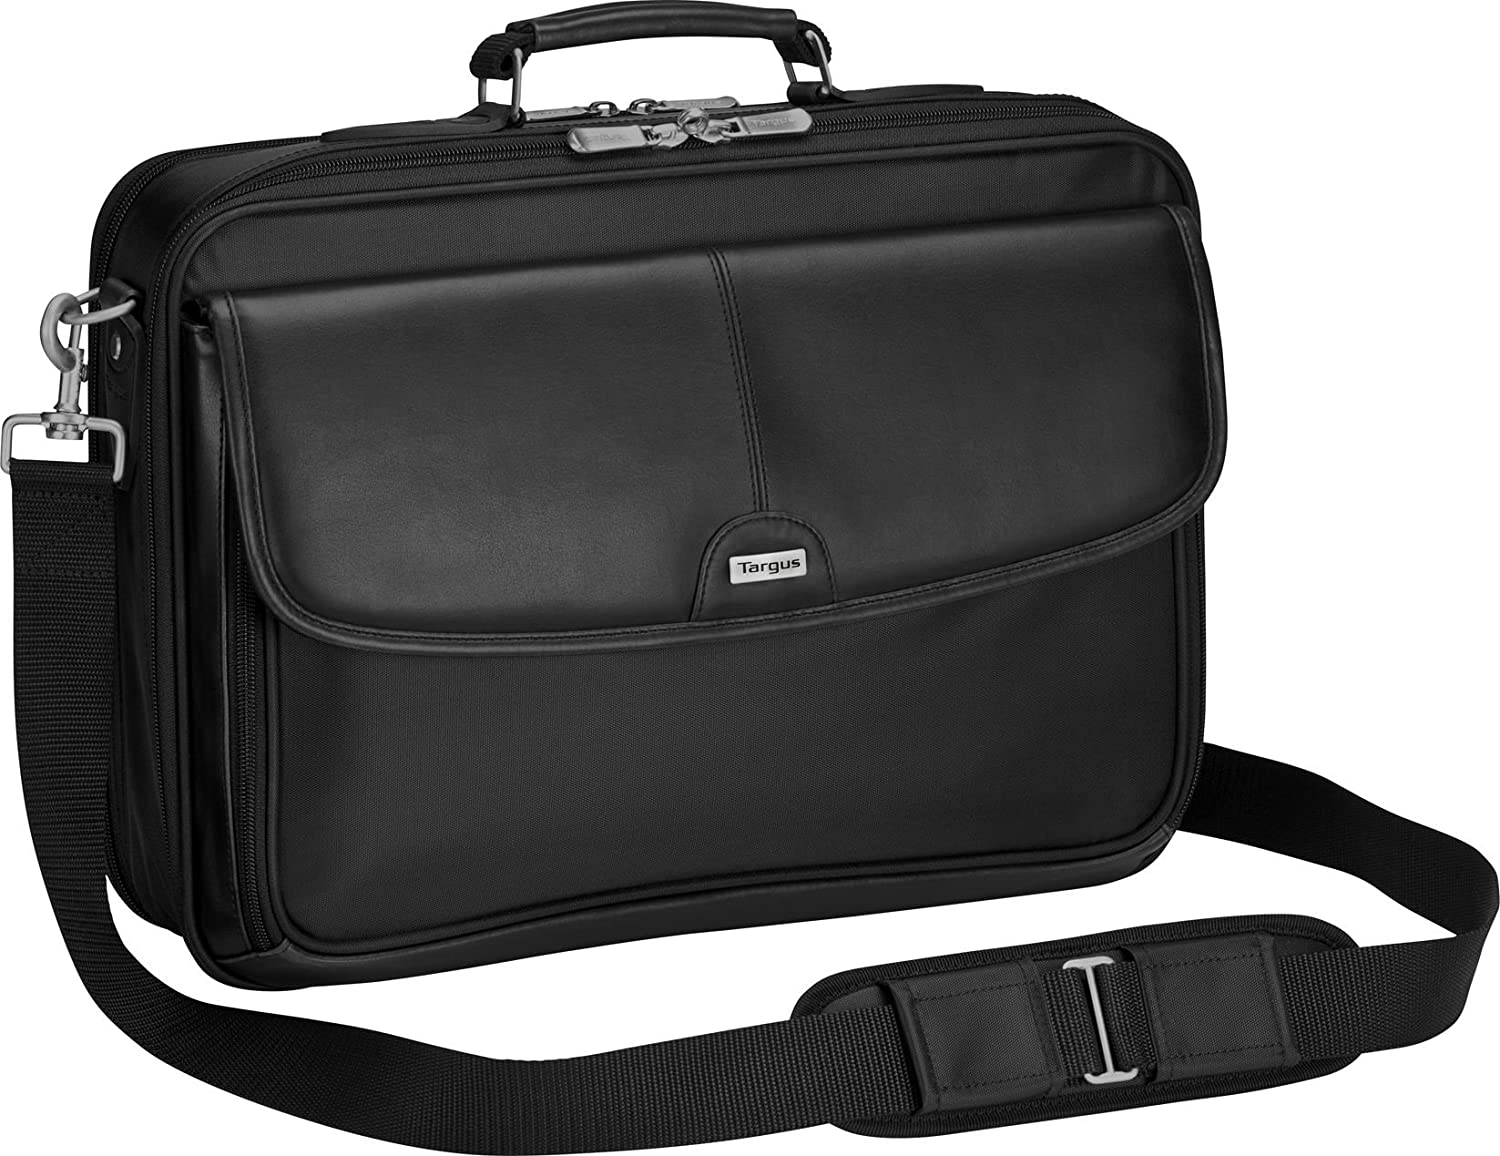 Targus Trademark Notepac Plus Case 16-Inch, Black (CTM400)